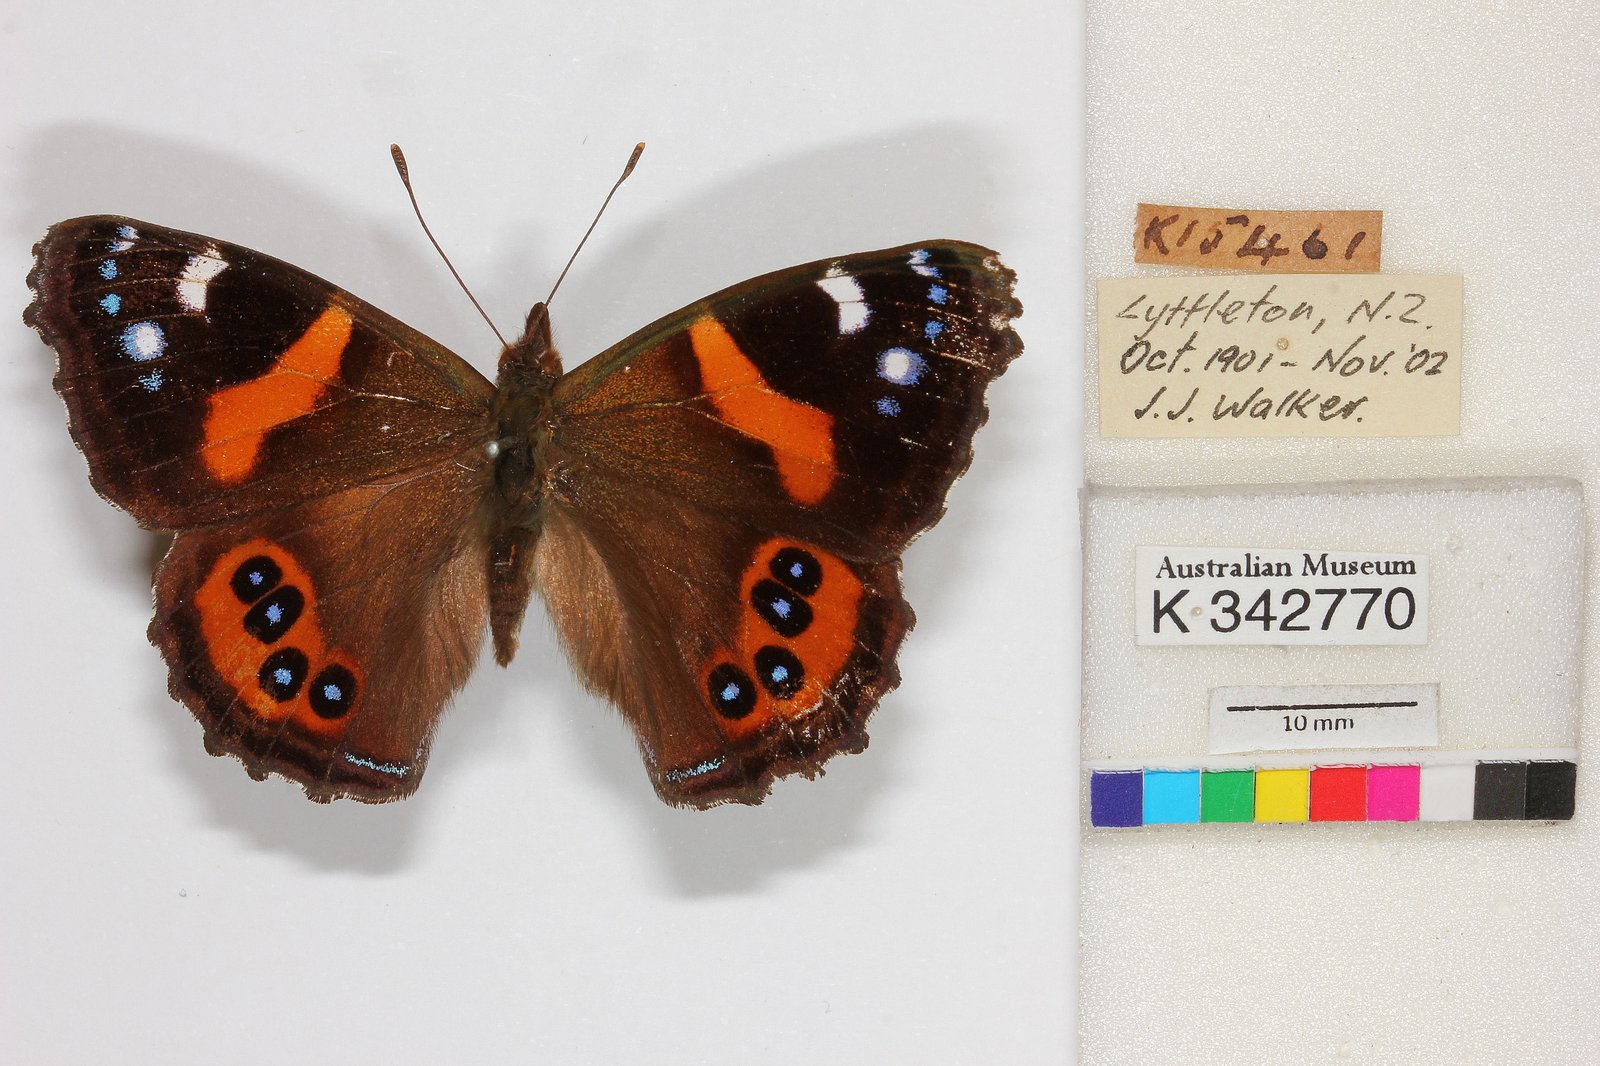 Specimen label from the AM